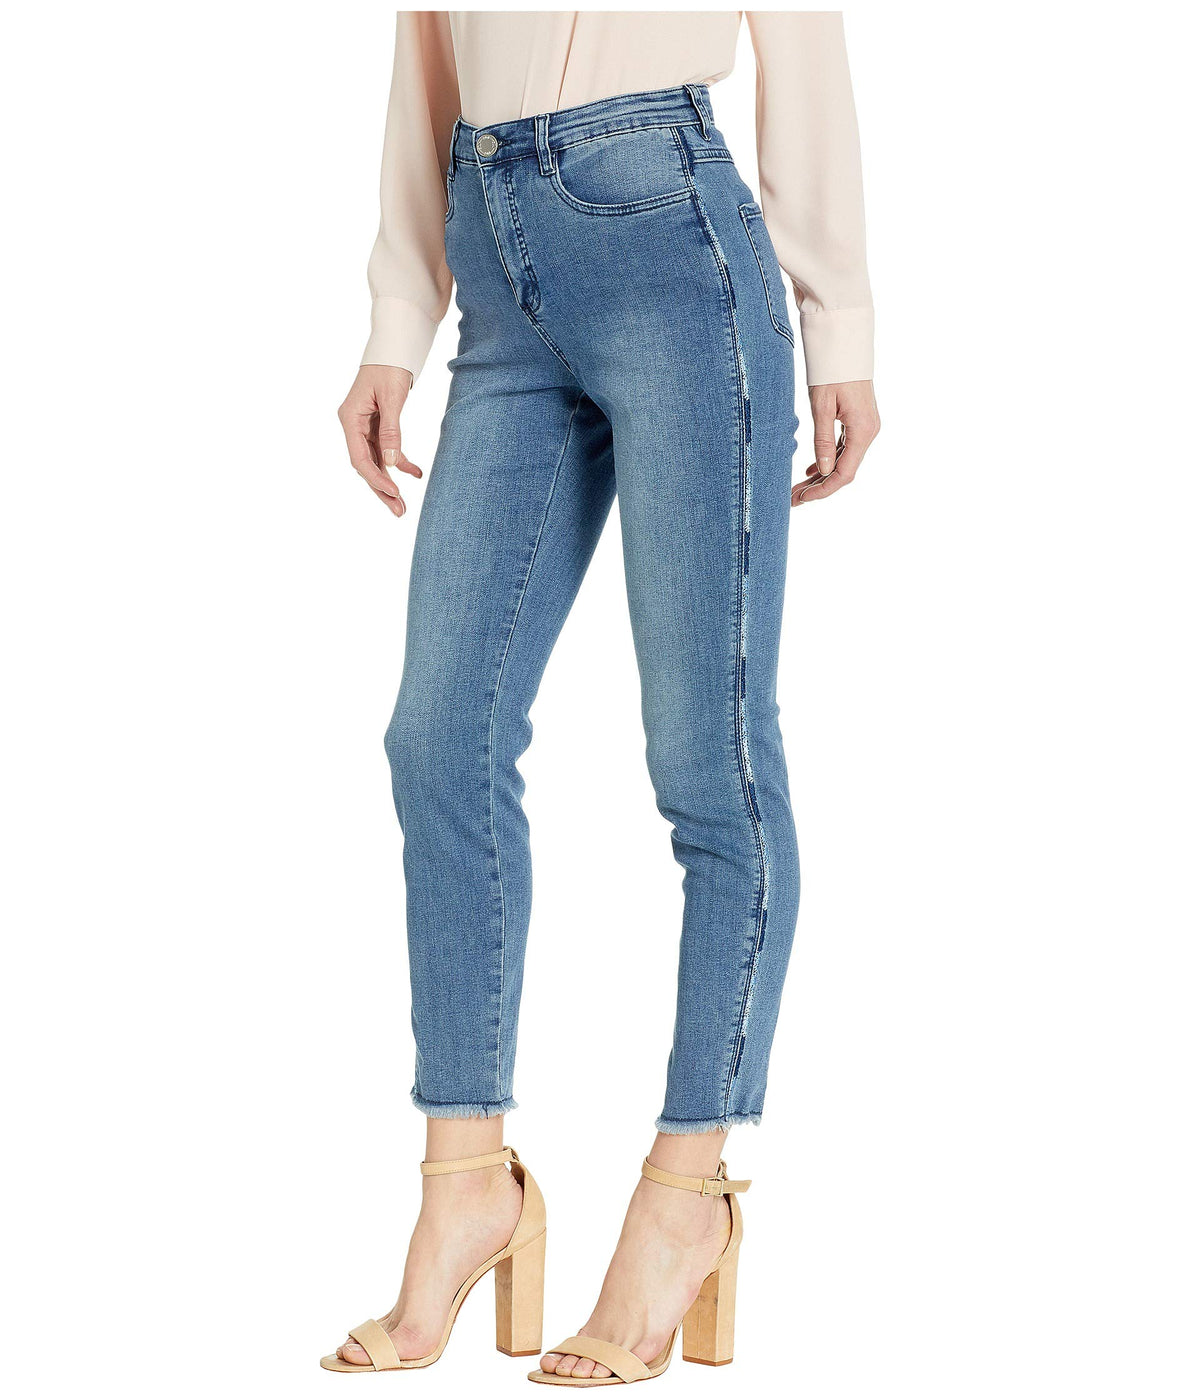 Statement Denim Ombre Side Seam with Embroidery Suzanne Slim Ankle in Indigo